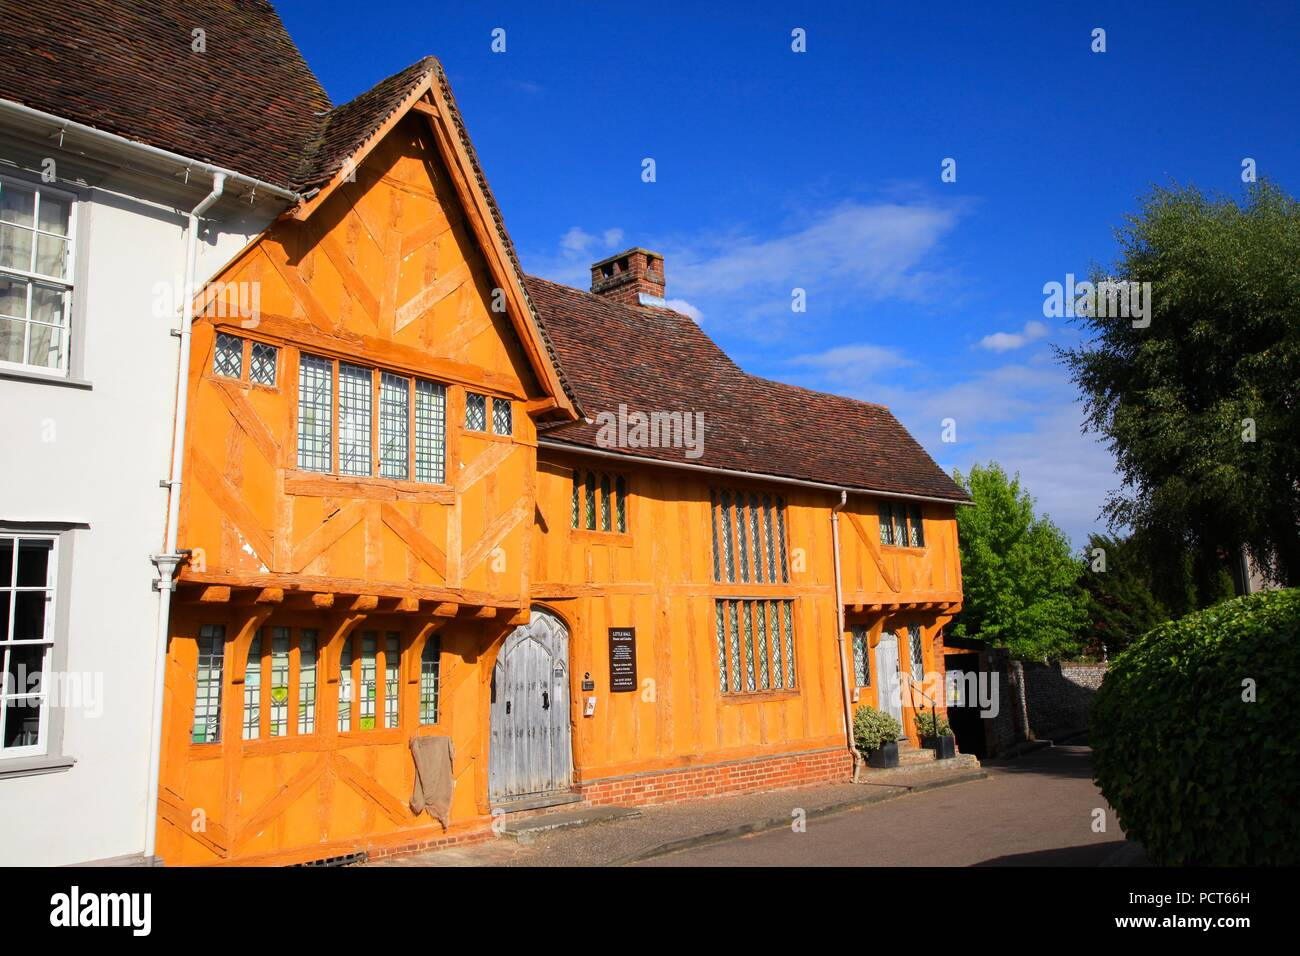 Little Hall House and Garden Market Place Lavenham Suffolk UK 2018 - Stock Image